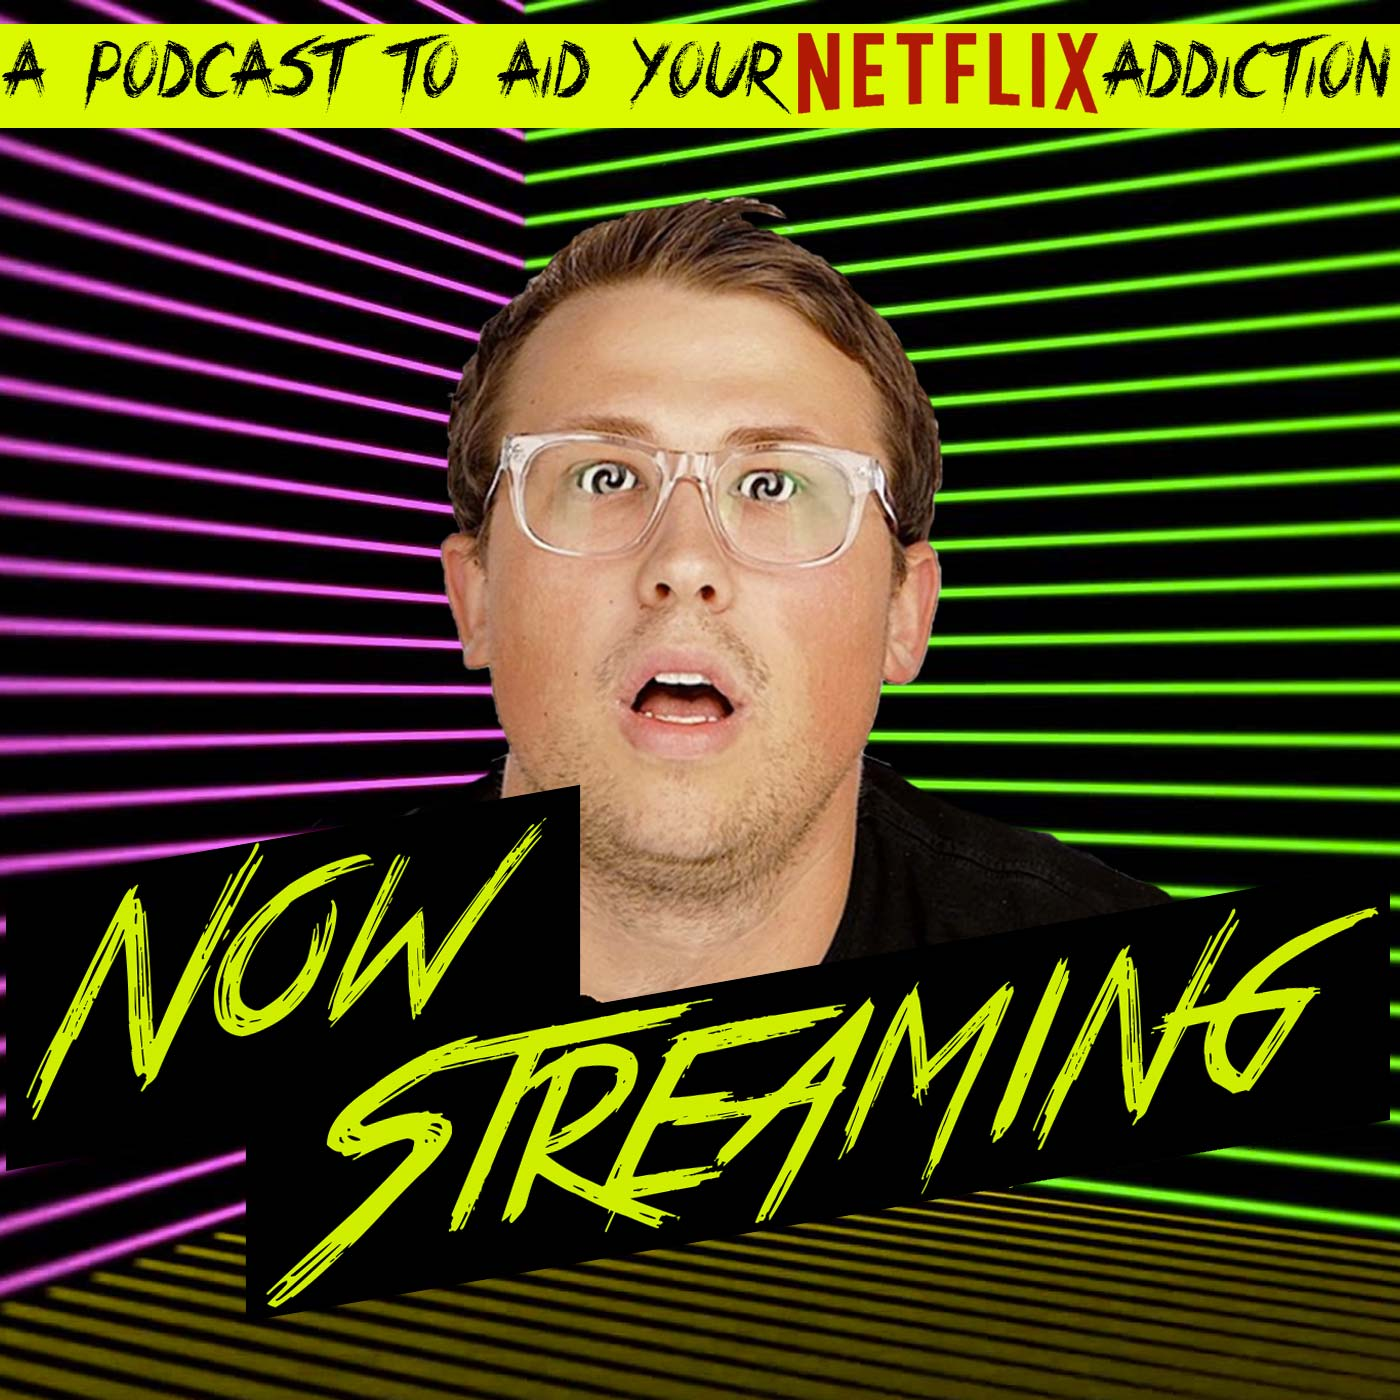 Now Streaming Episode 2 - Netflix Podcast with guests Buz 'Danger' Wallack, Jordon Dobbs Rosa, and Paul Zlatin